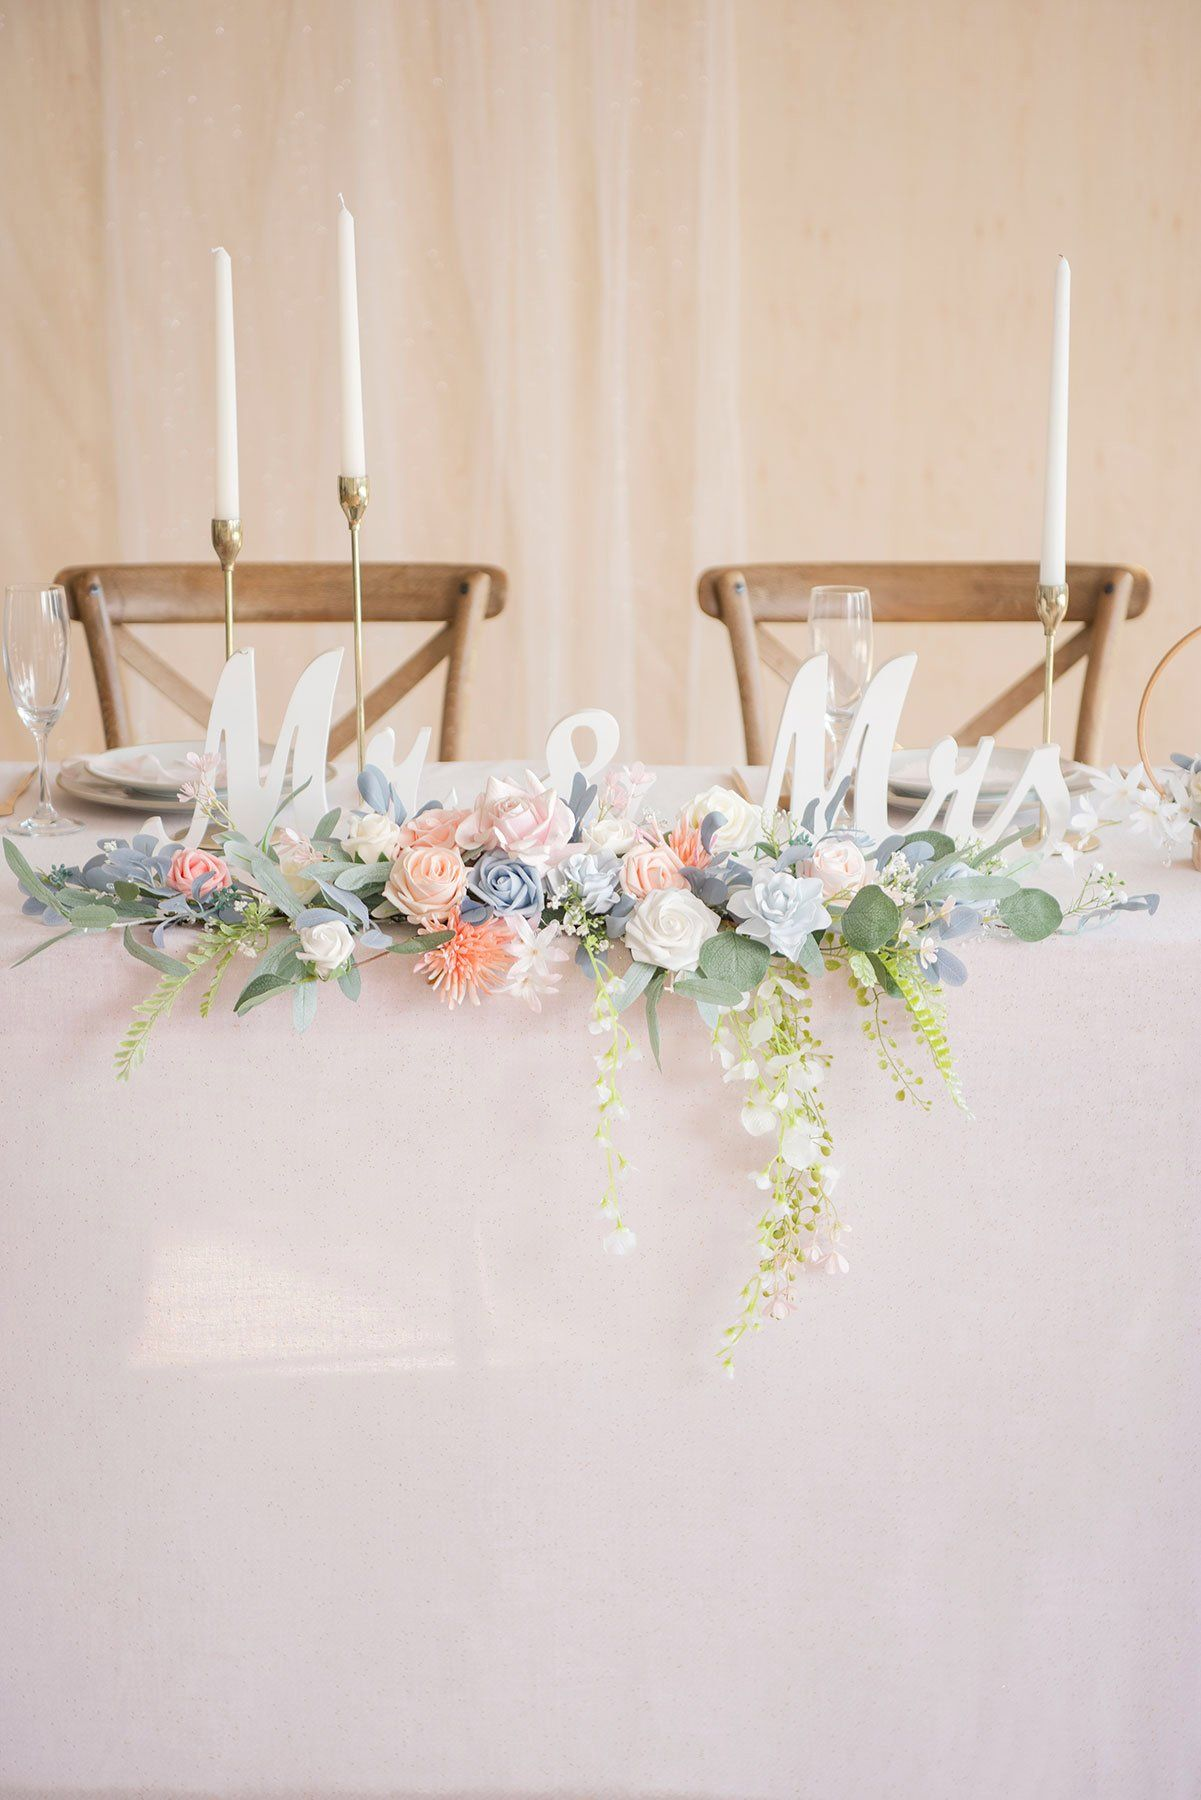 Flower Swag and Tablecloth for Sweetheart Table - Dusty Blue